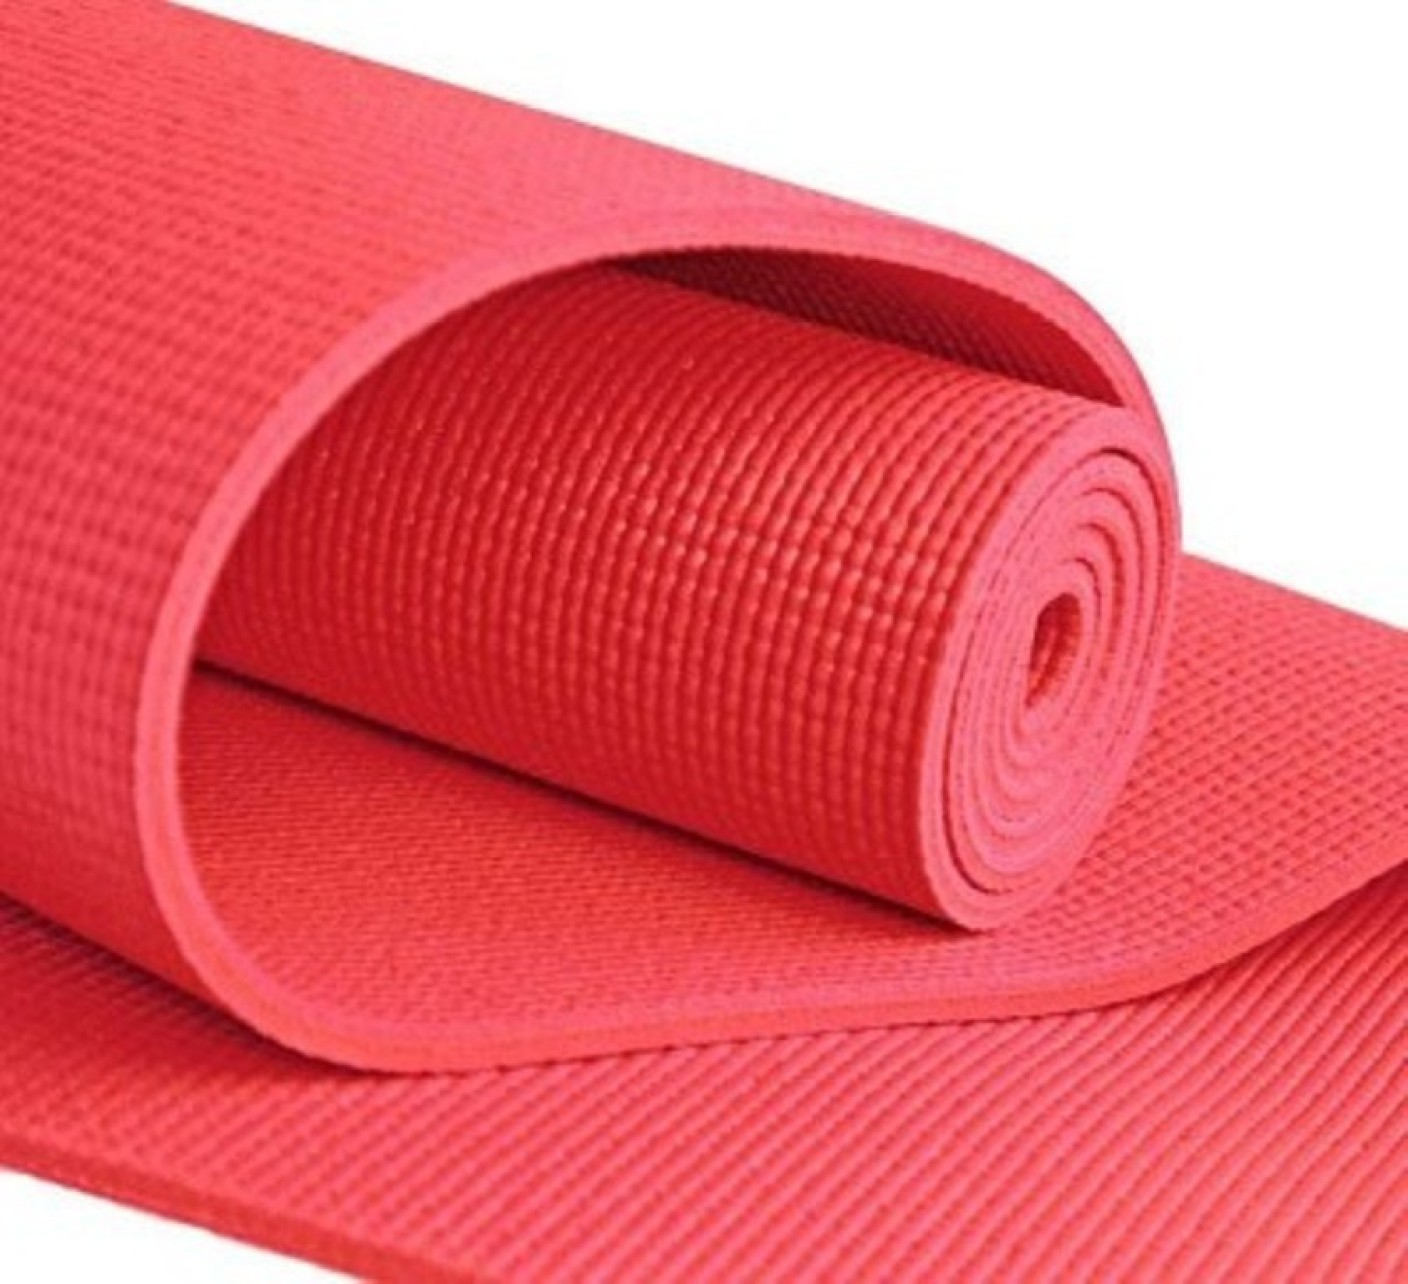 Quick Shel Exercise Mat Durable Quality Red 4 Mm Yoga Mat